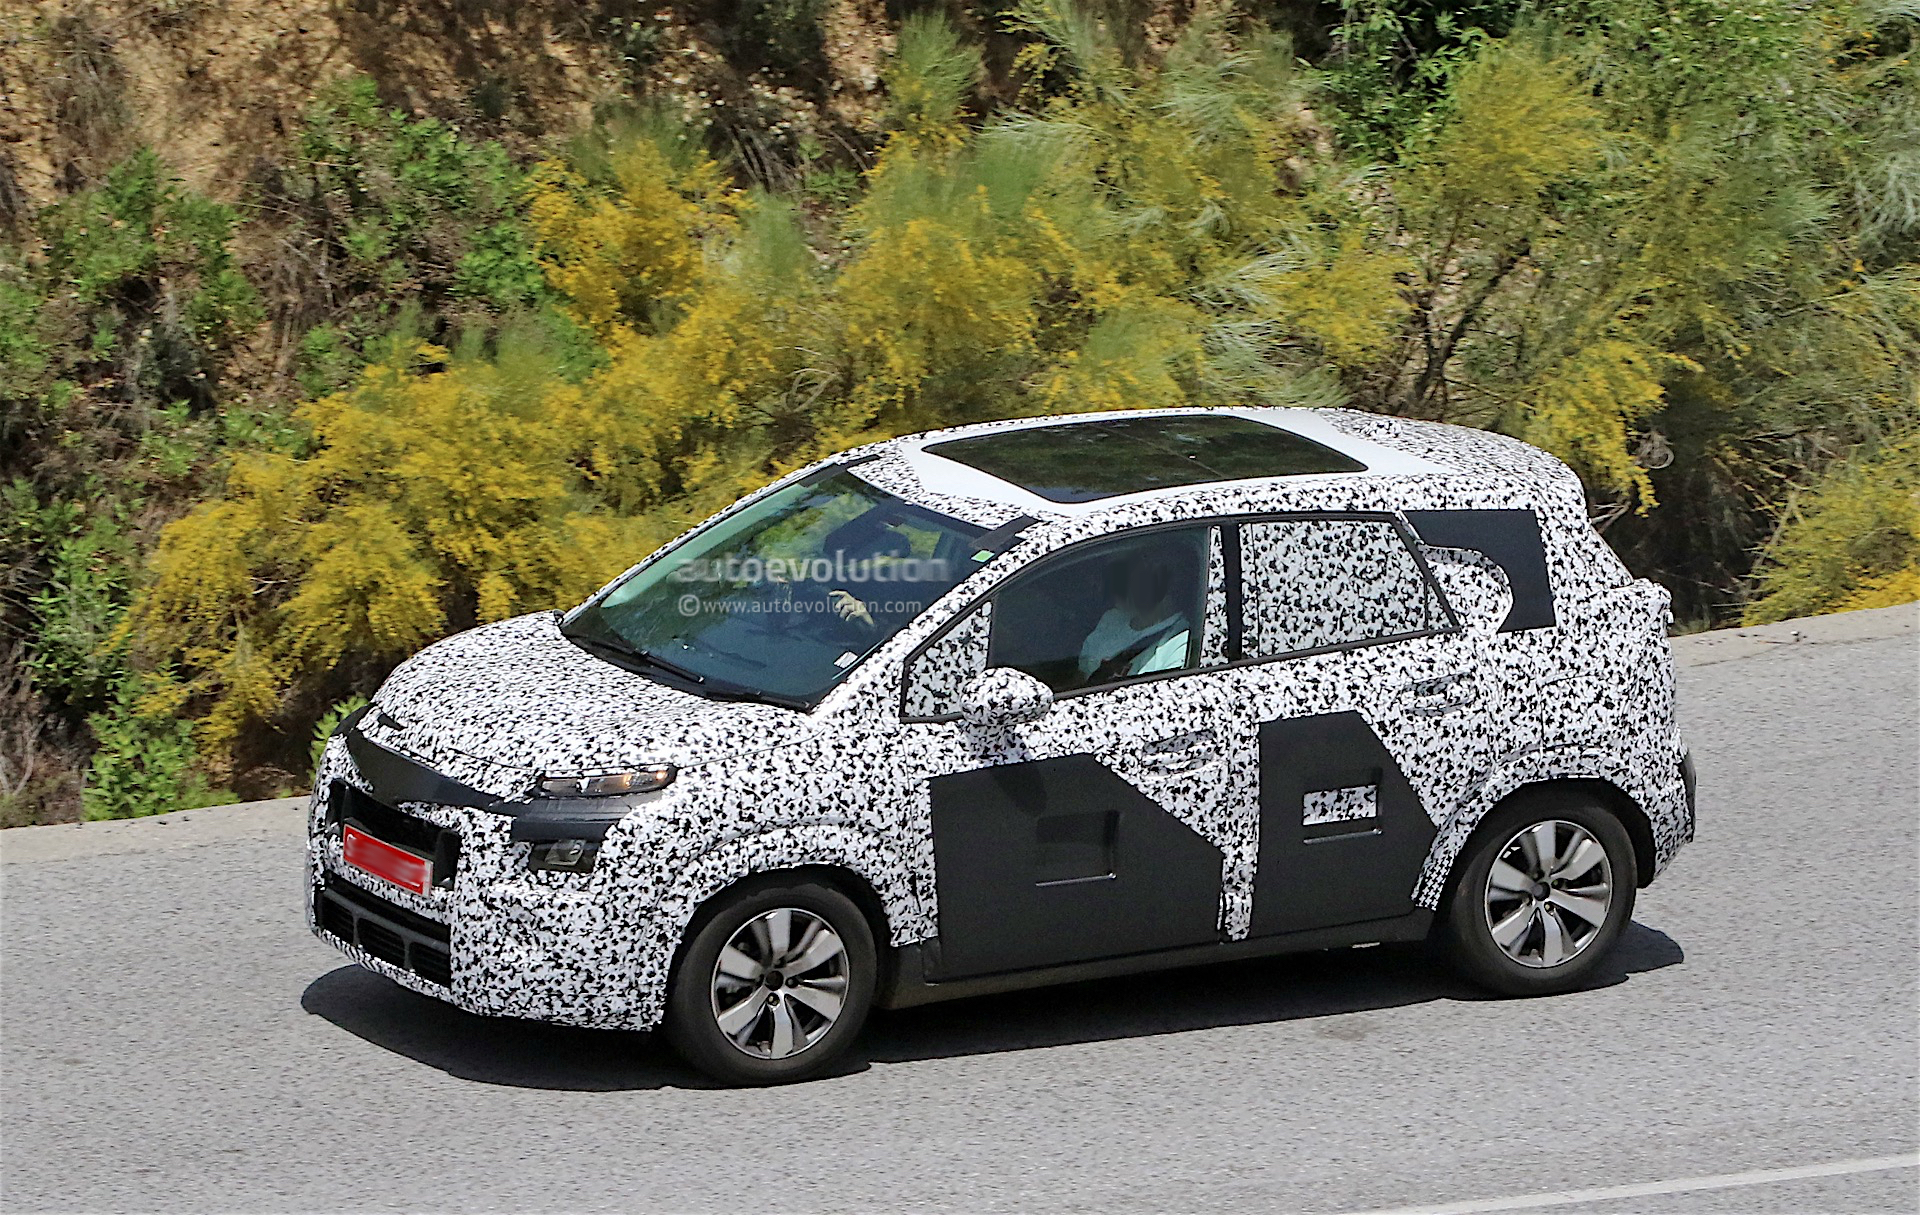 citroen testing 2017 c3 picasso it is still funky looking autoevolution. Black Bedroom Furniture Sets. Home Design Ideas